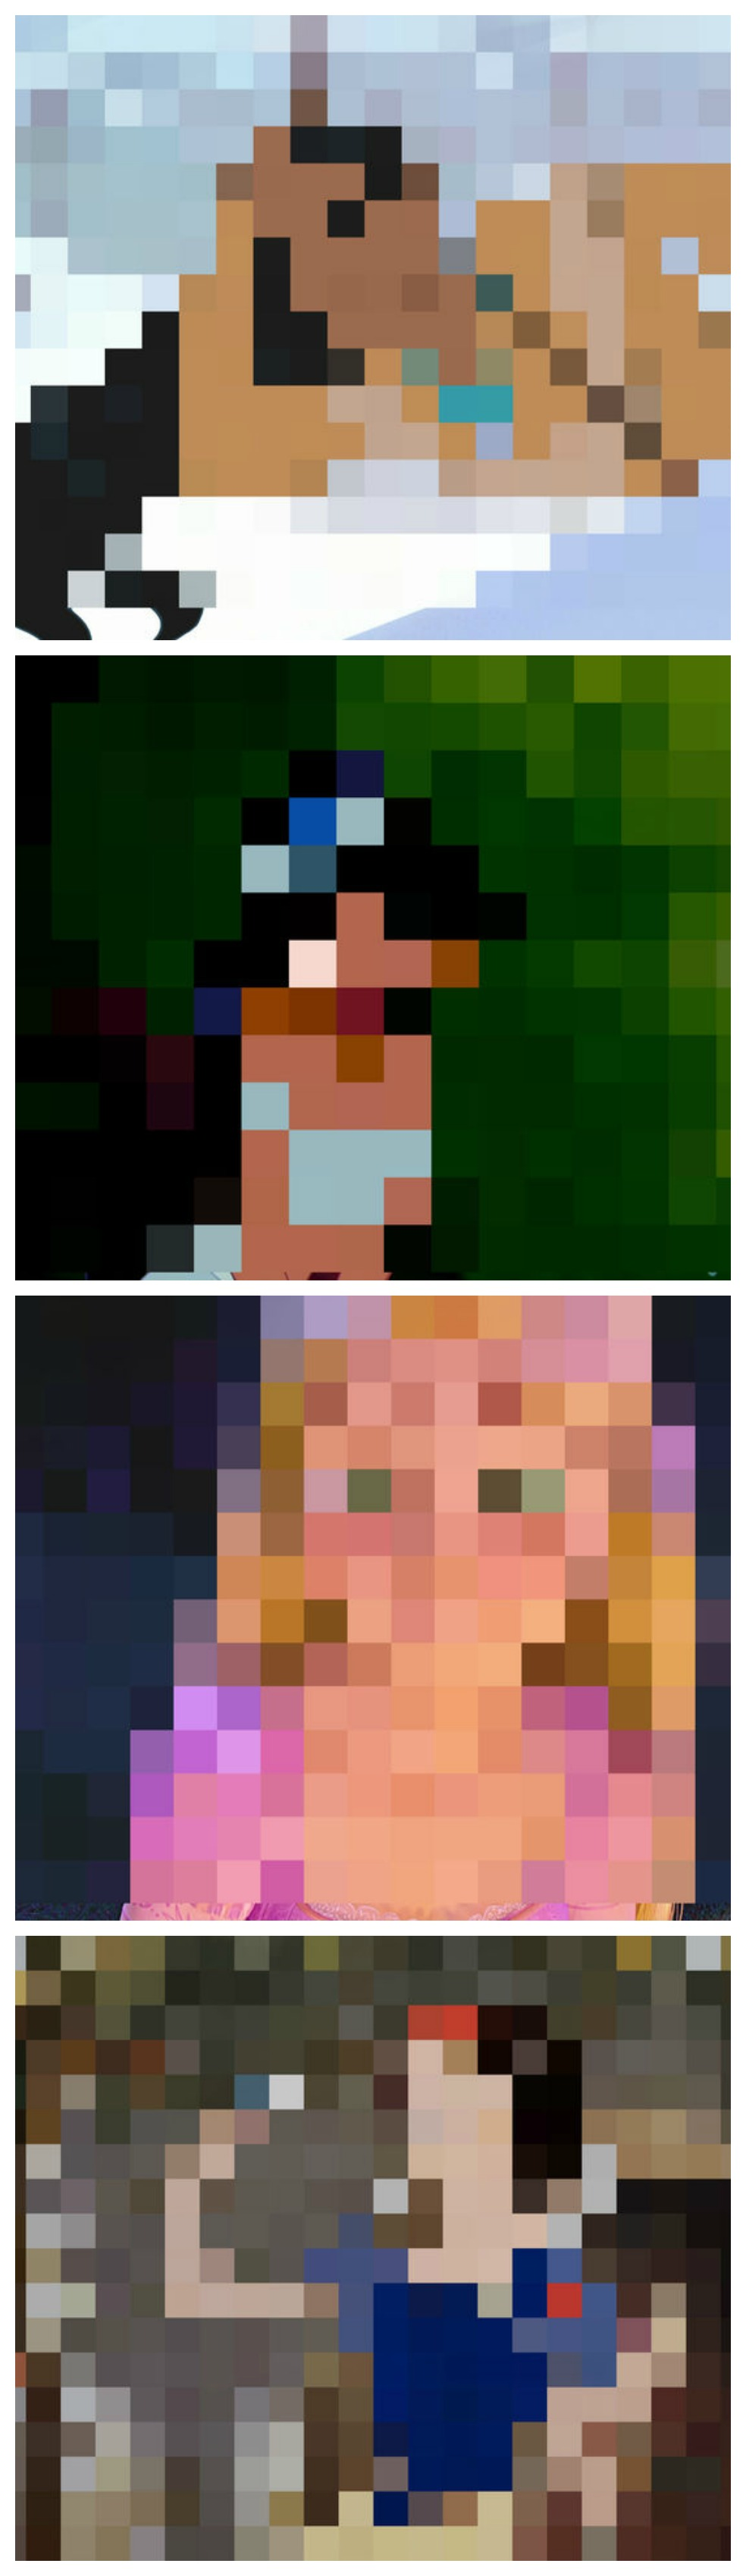 And can you name the character after you see the non-pixalated image?